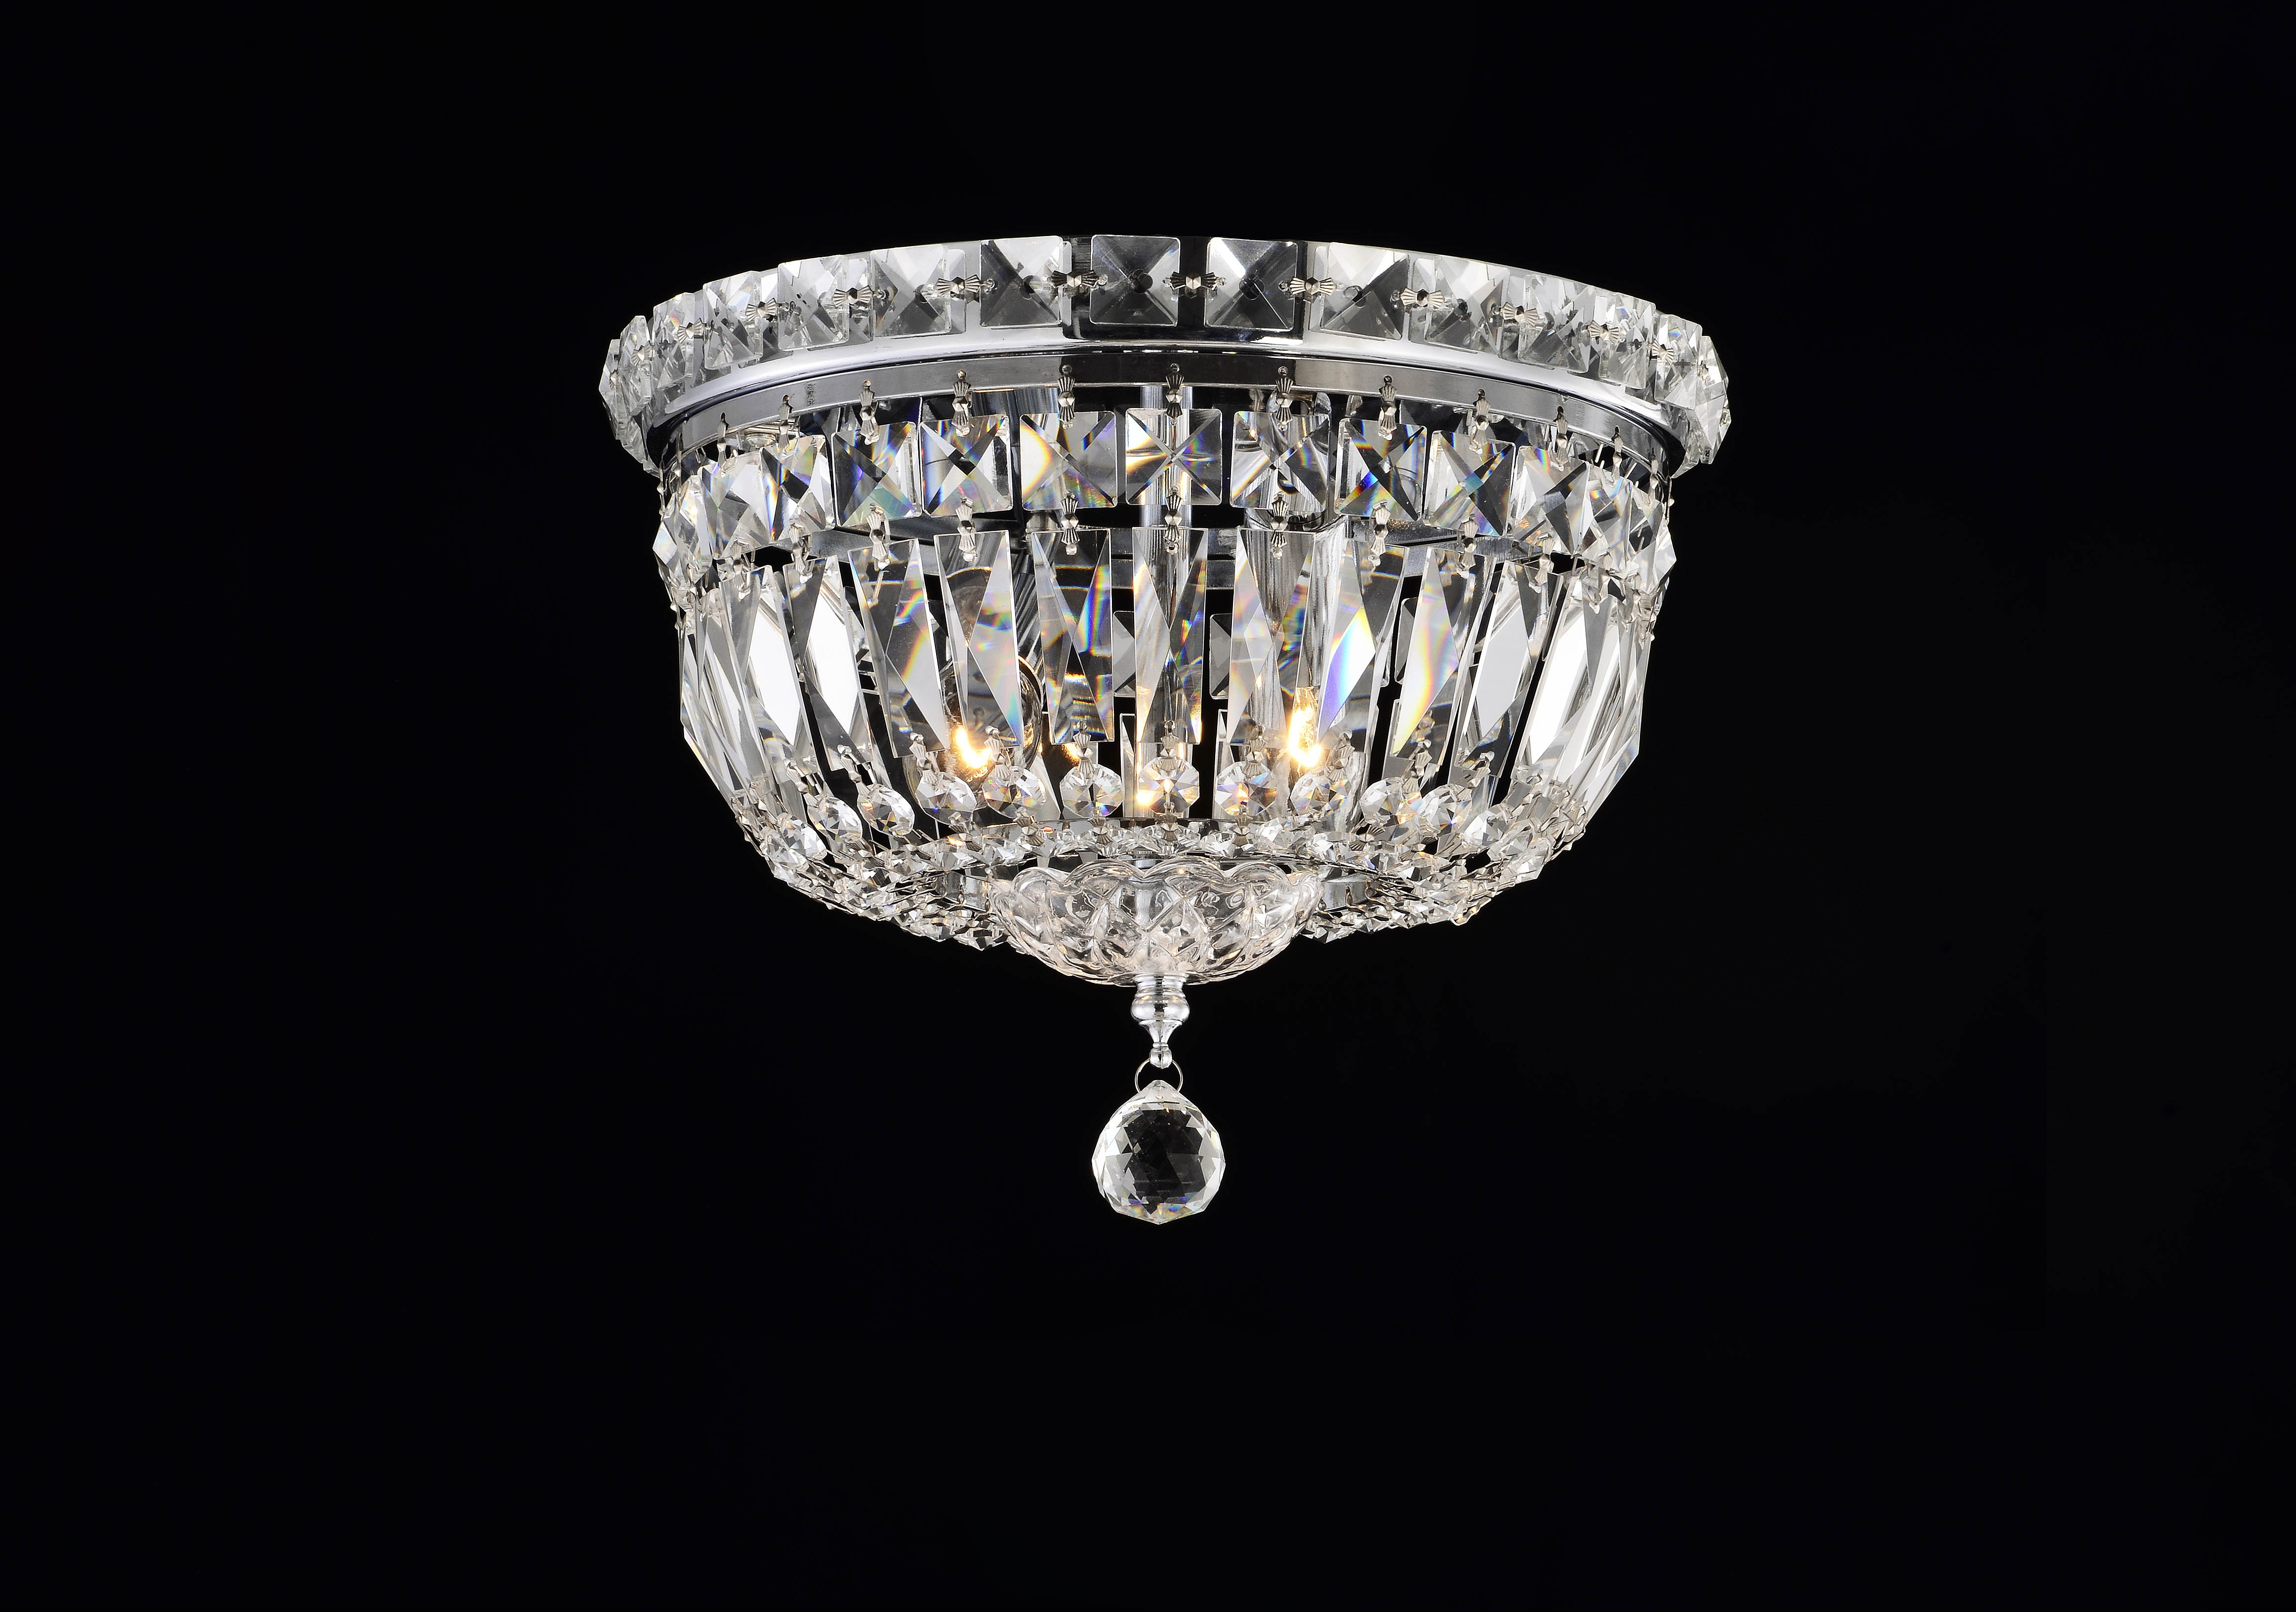 Dianna 2 Light Chrome And Glass Crystal Ceiling Flushmount Chandelier 10 5 Wx 8